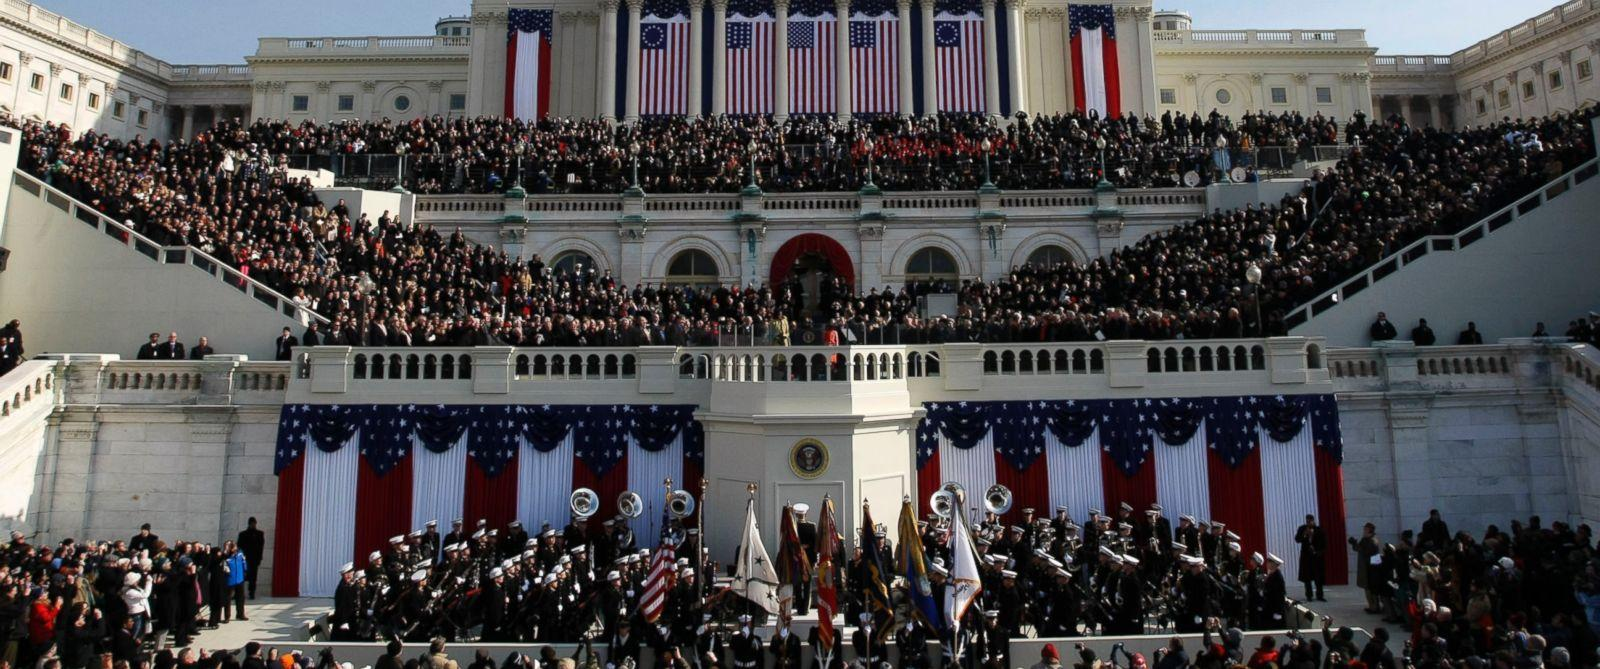 Donald J. Trump has been sworn in as 45th President, and will begin his  presidential term.